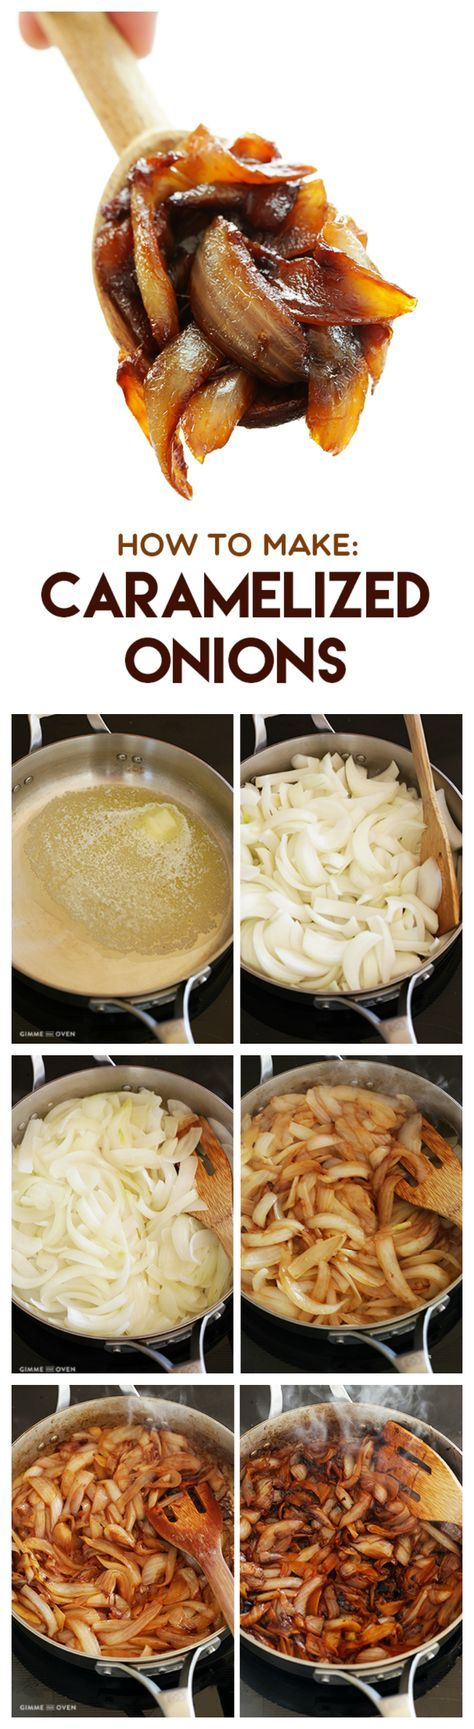 If you're like me, onions maketh the burger. Here's a great method for creating perfectly caramelised Onions for your favourite burger recipe!  How To Make Caramelized Onions -- a step-by-step photo tutorial and recipe